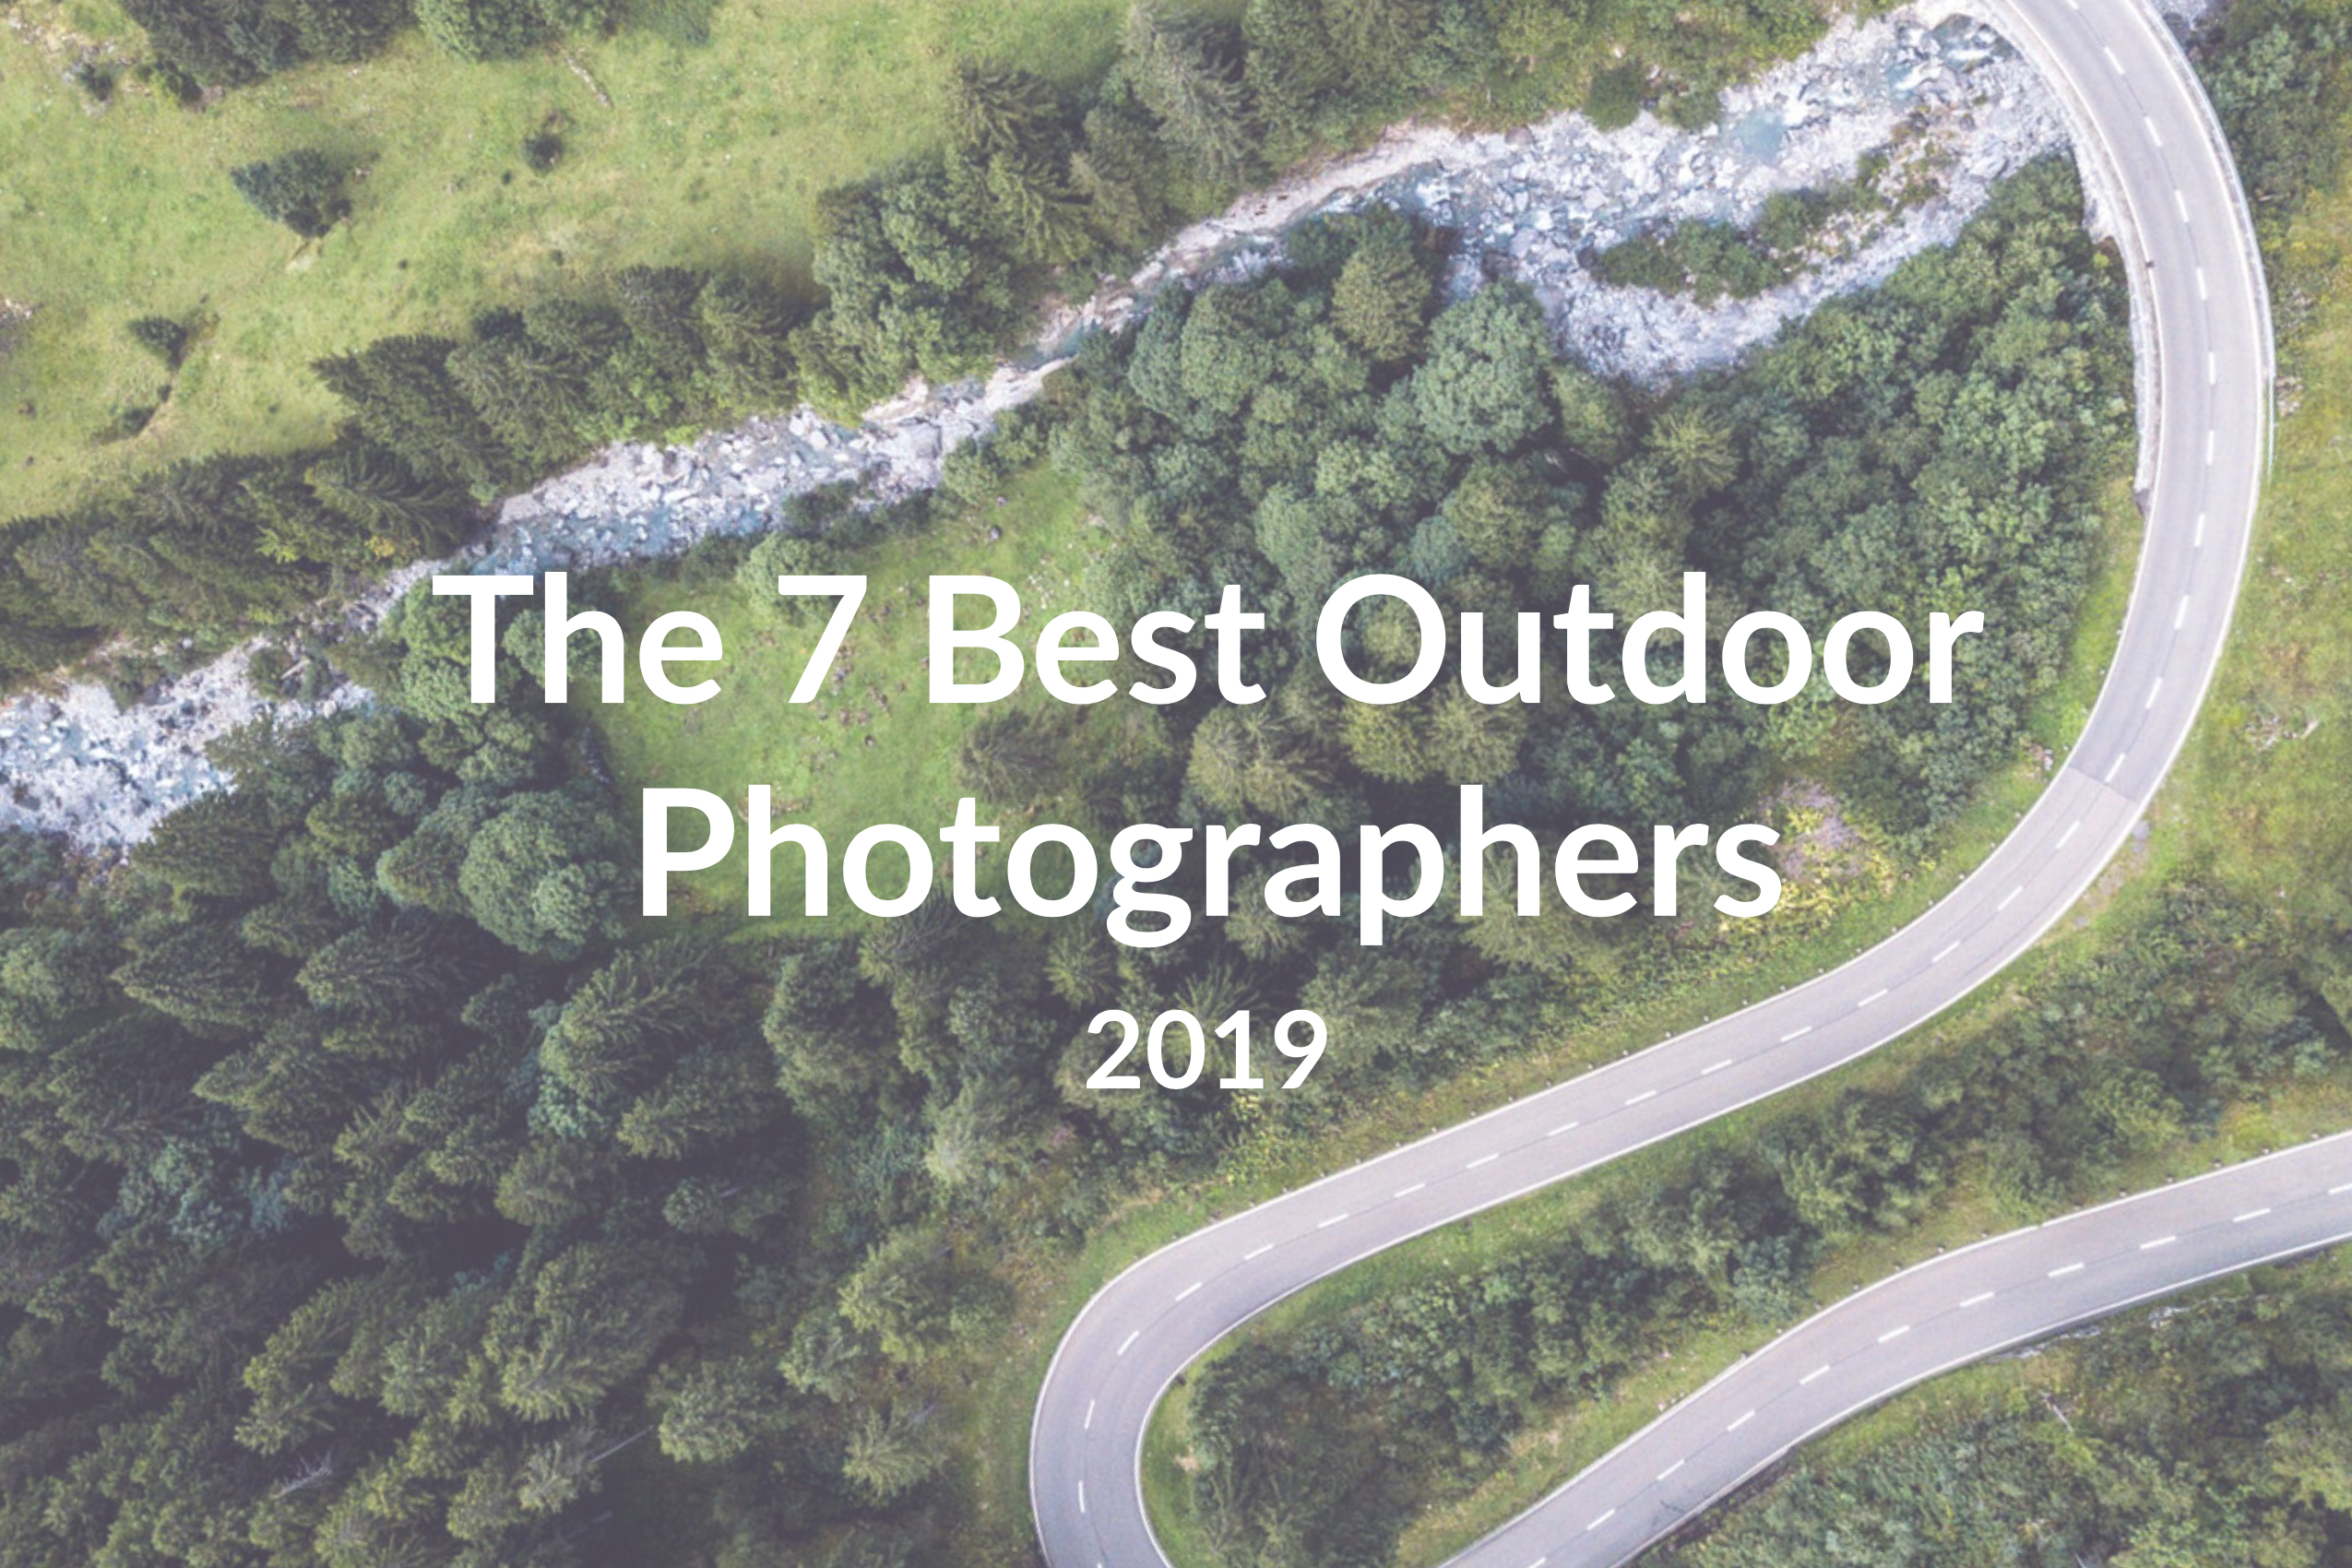 The 7 Best Outdoor Photographers to Follow in 2019